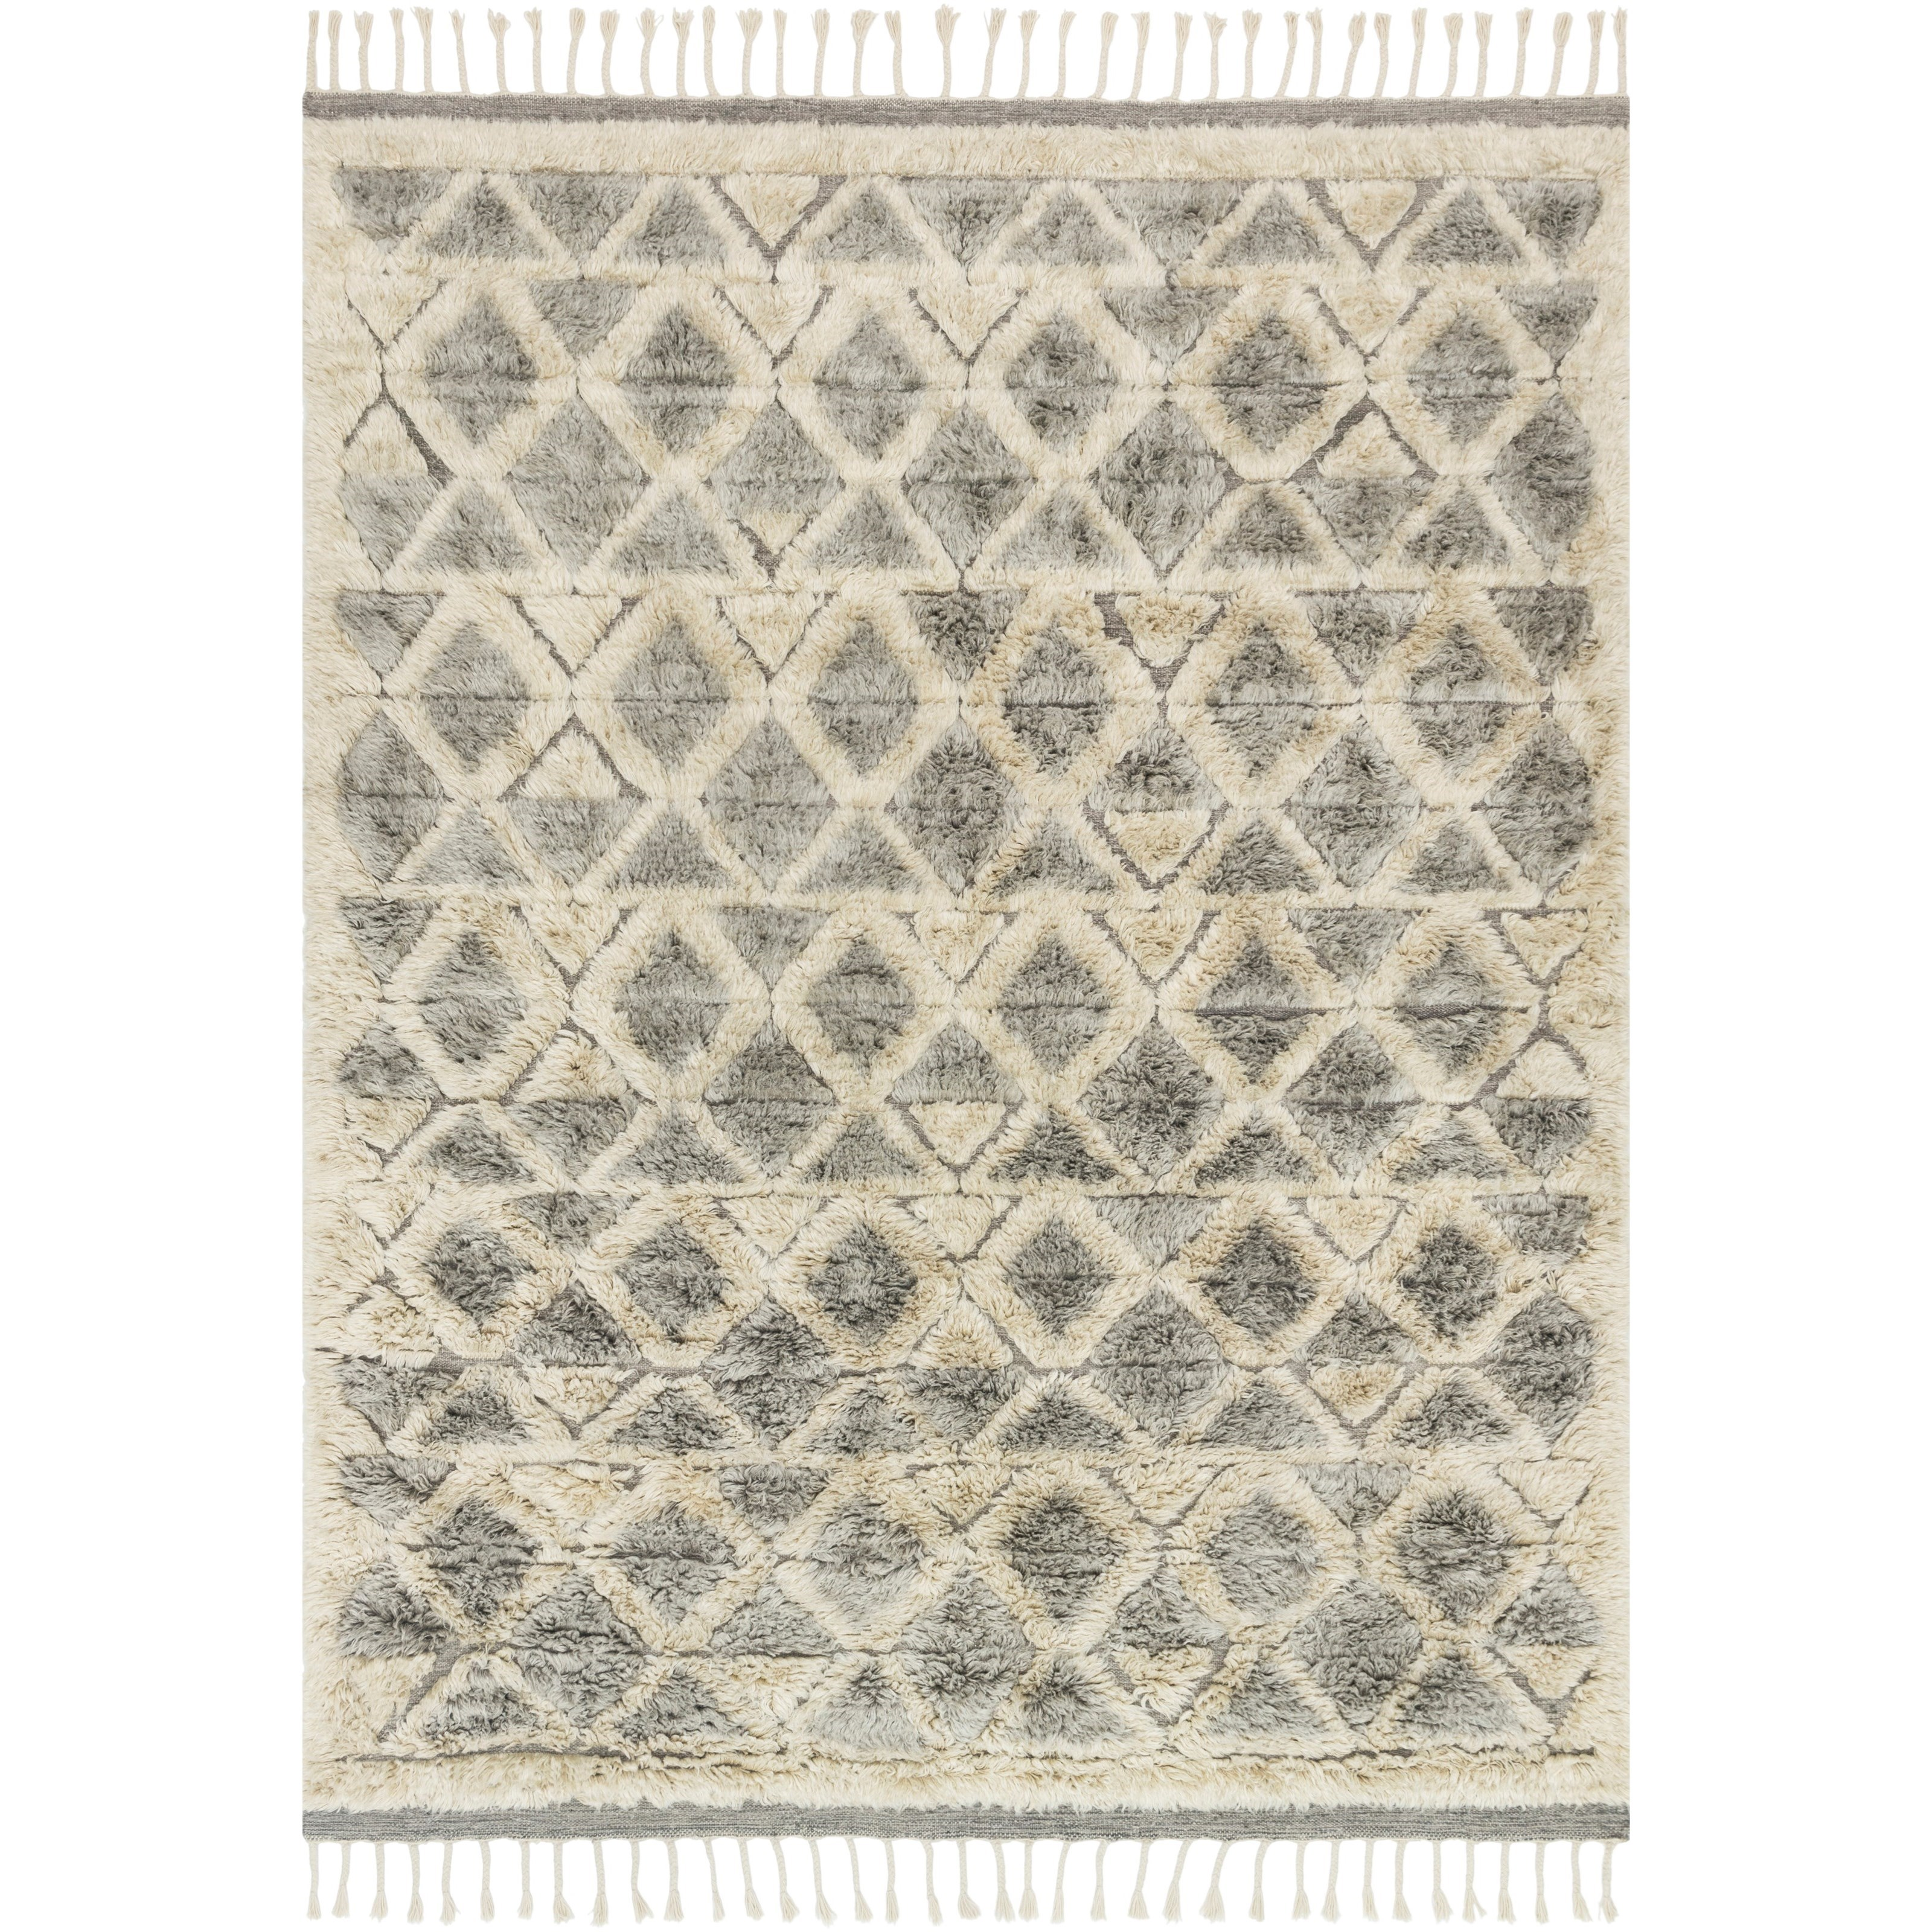 """Hygge 8'6"""" x 11'6"""" Smoke / Taupe Rug by Loloi Rugs at Virginia Furniture Market"""